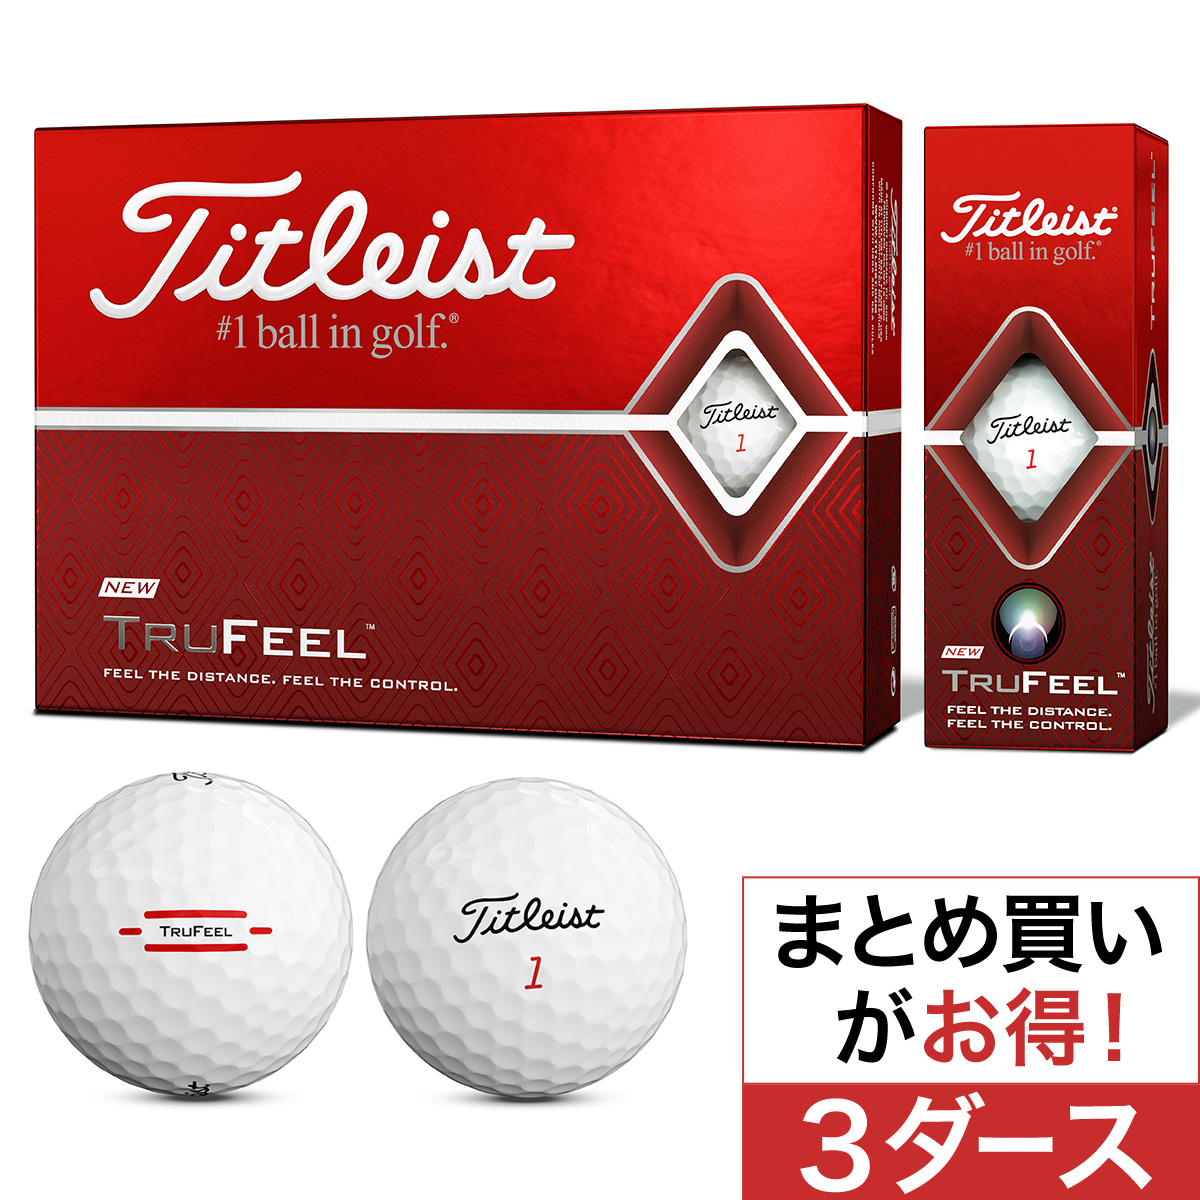 TRUFEEL ボール 3ダースセット